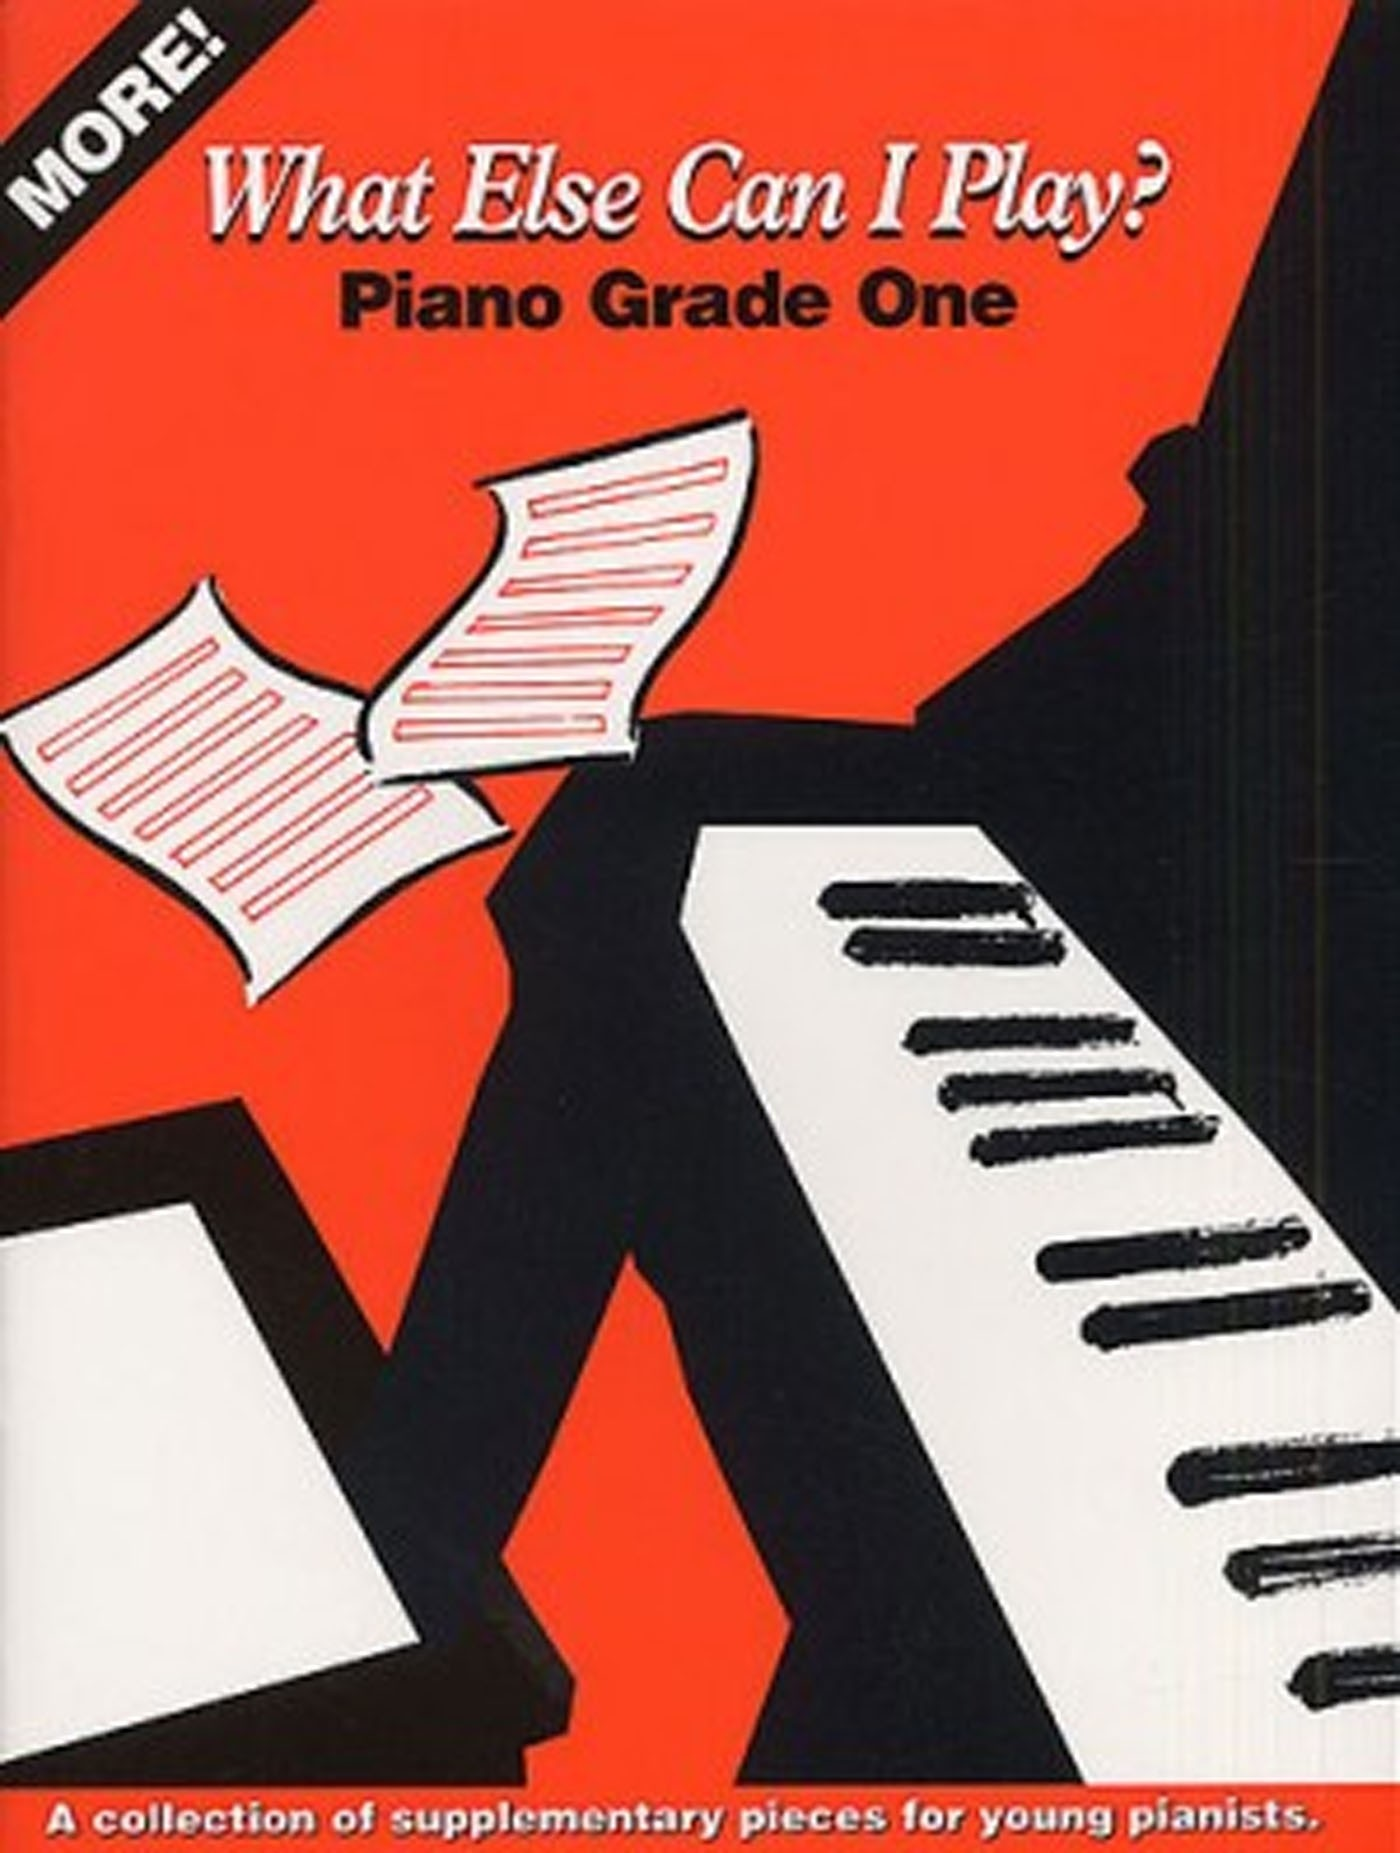 More! What Else Can I Play? Piano Grade 1 Book Supplementary Pieces S158